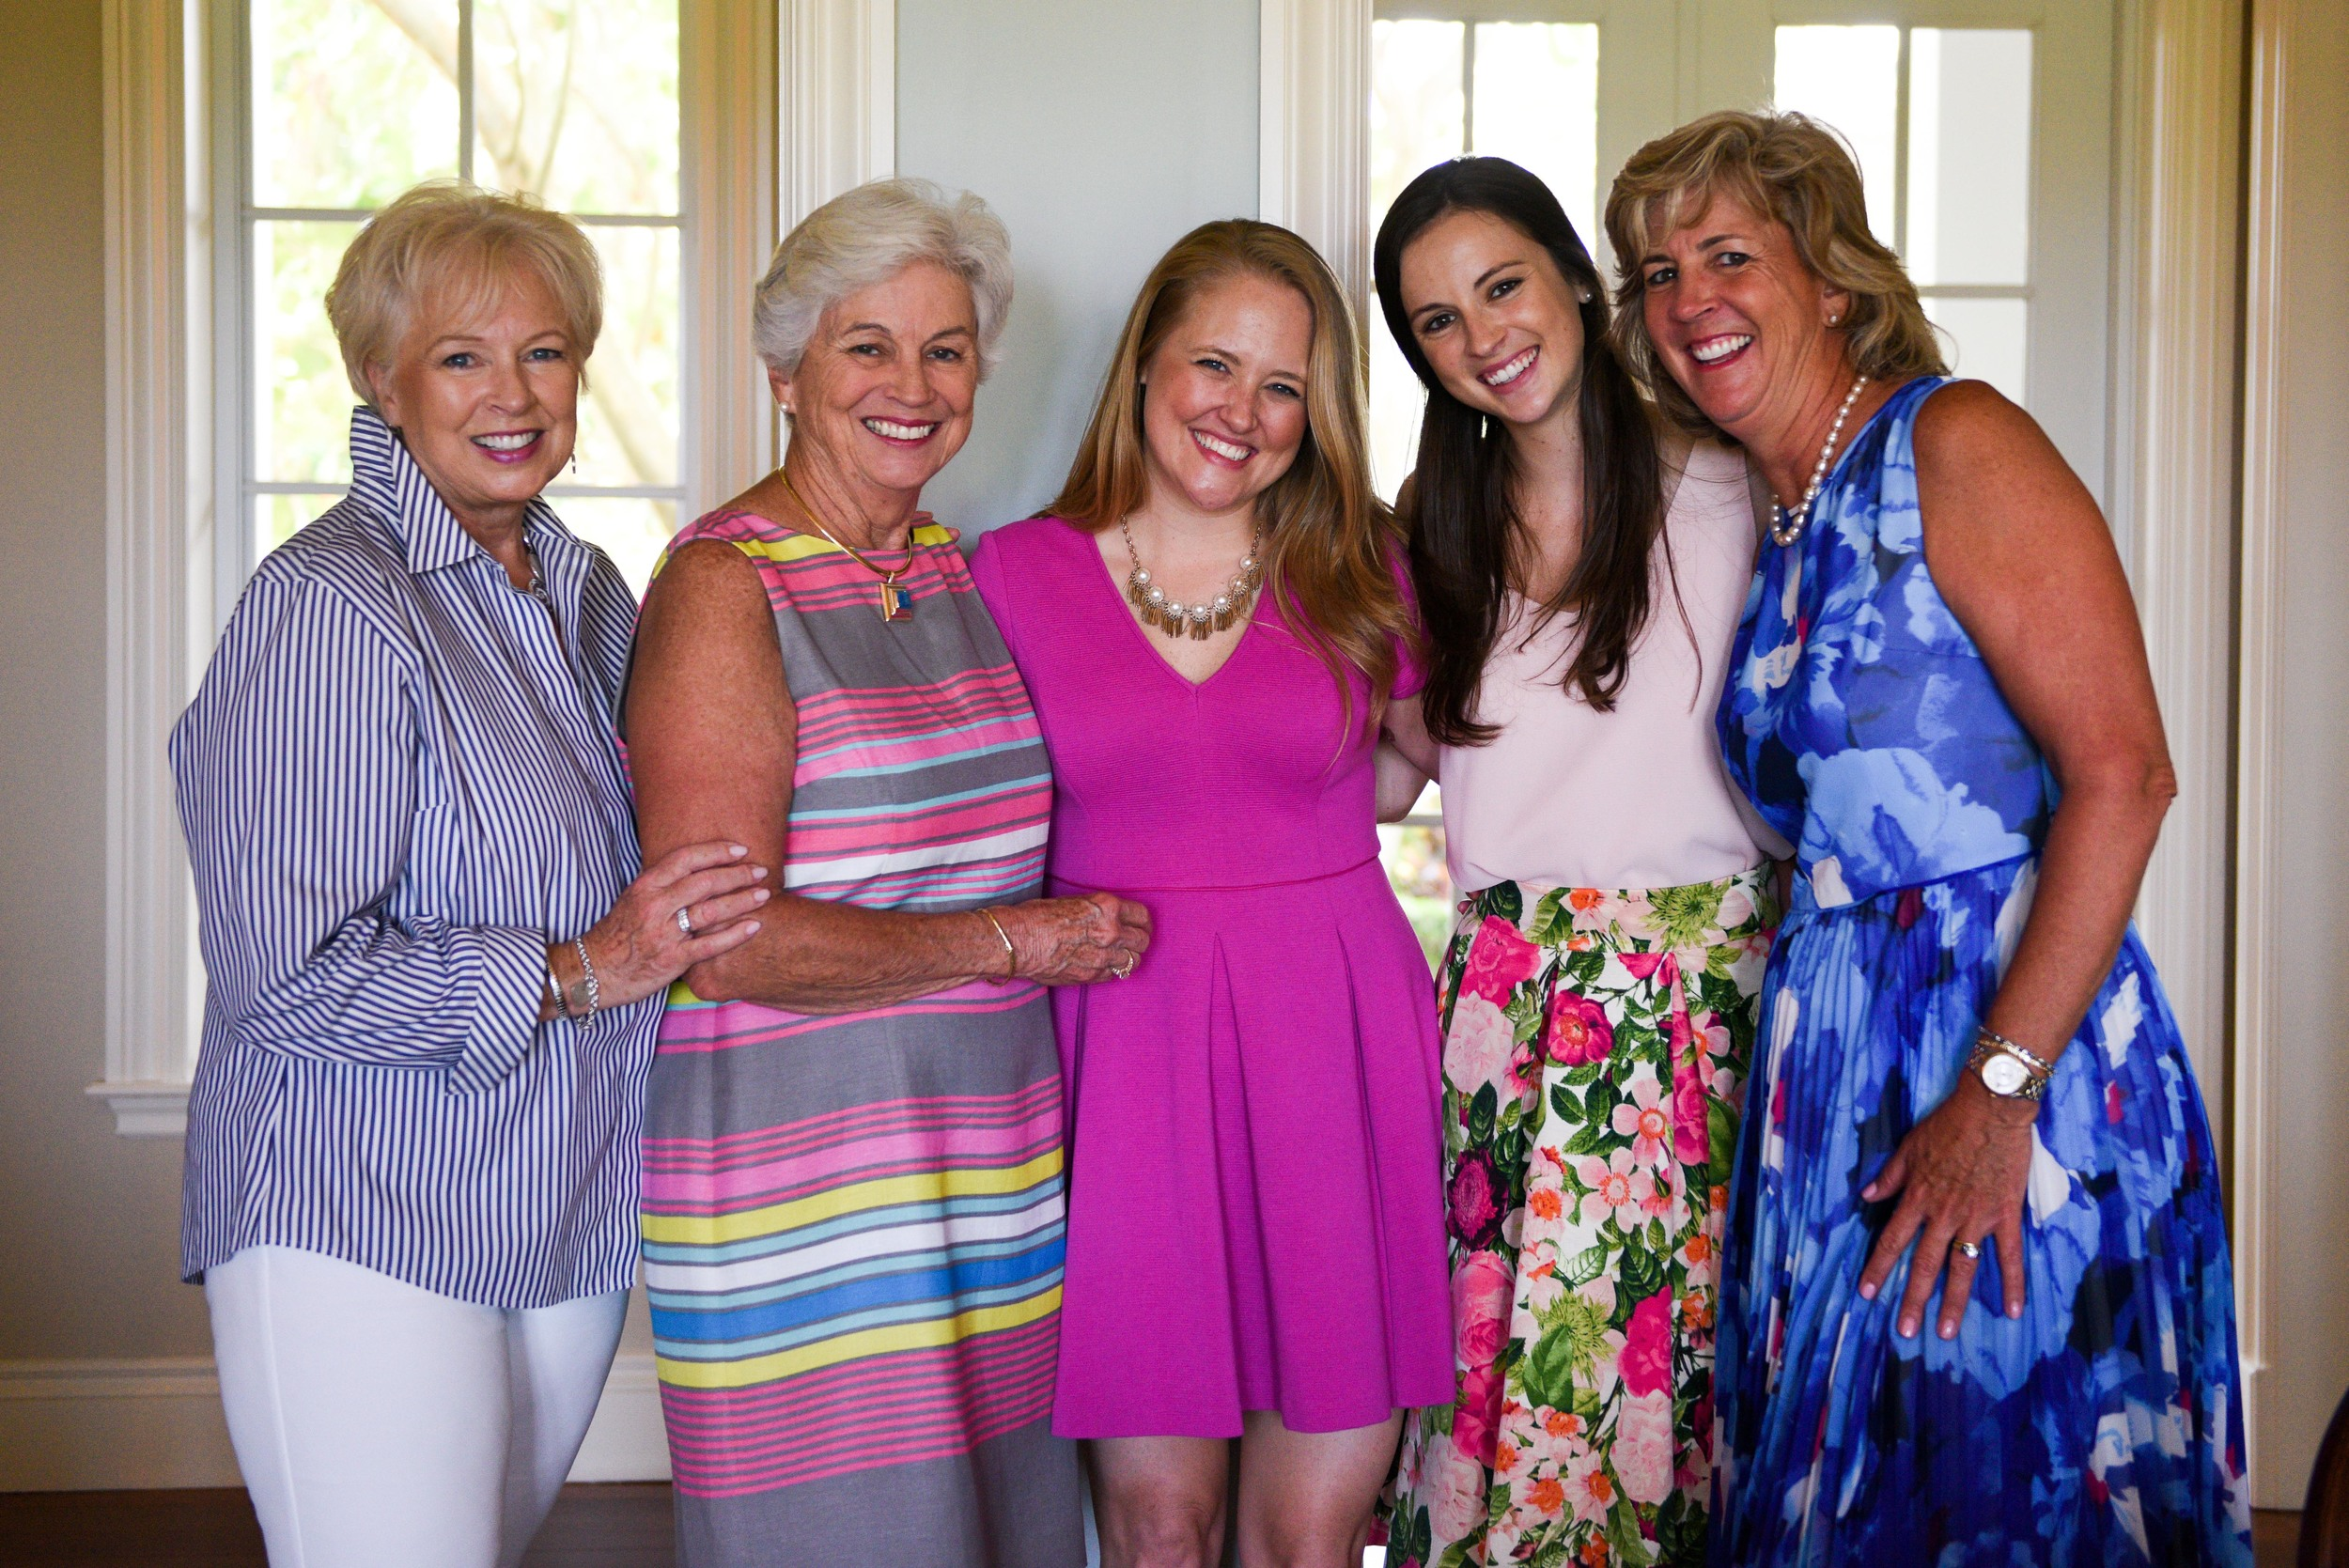 Bridal_Shower_CCaseyPhotography_45.jpg